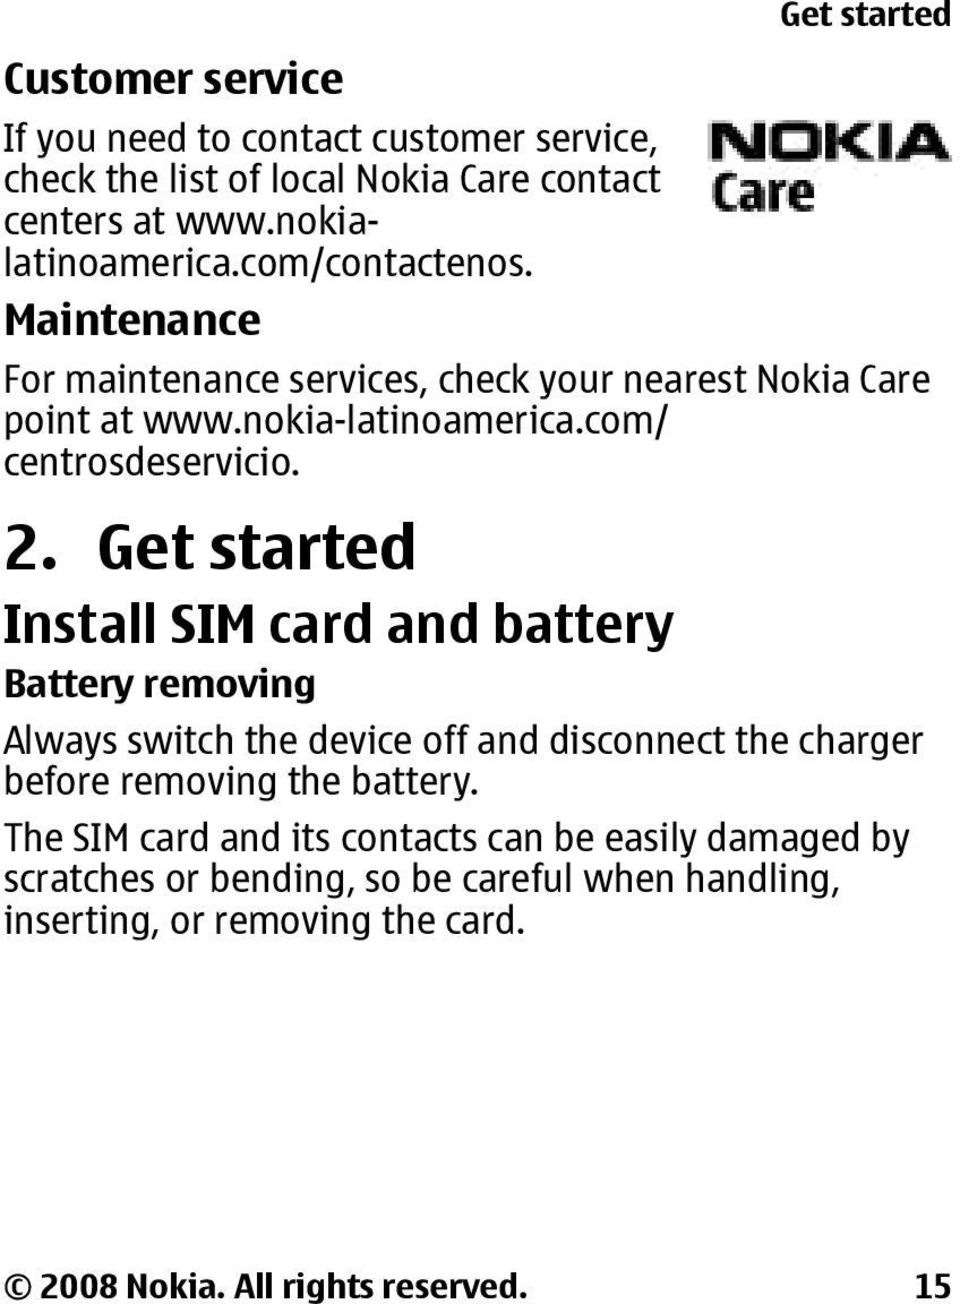 Get started Install SIM card and battery Battery removing Get started Always switch the device off and disconnect the charger before removing the